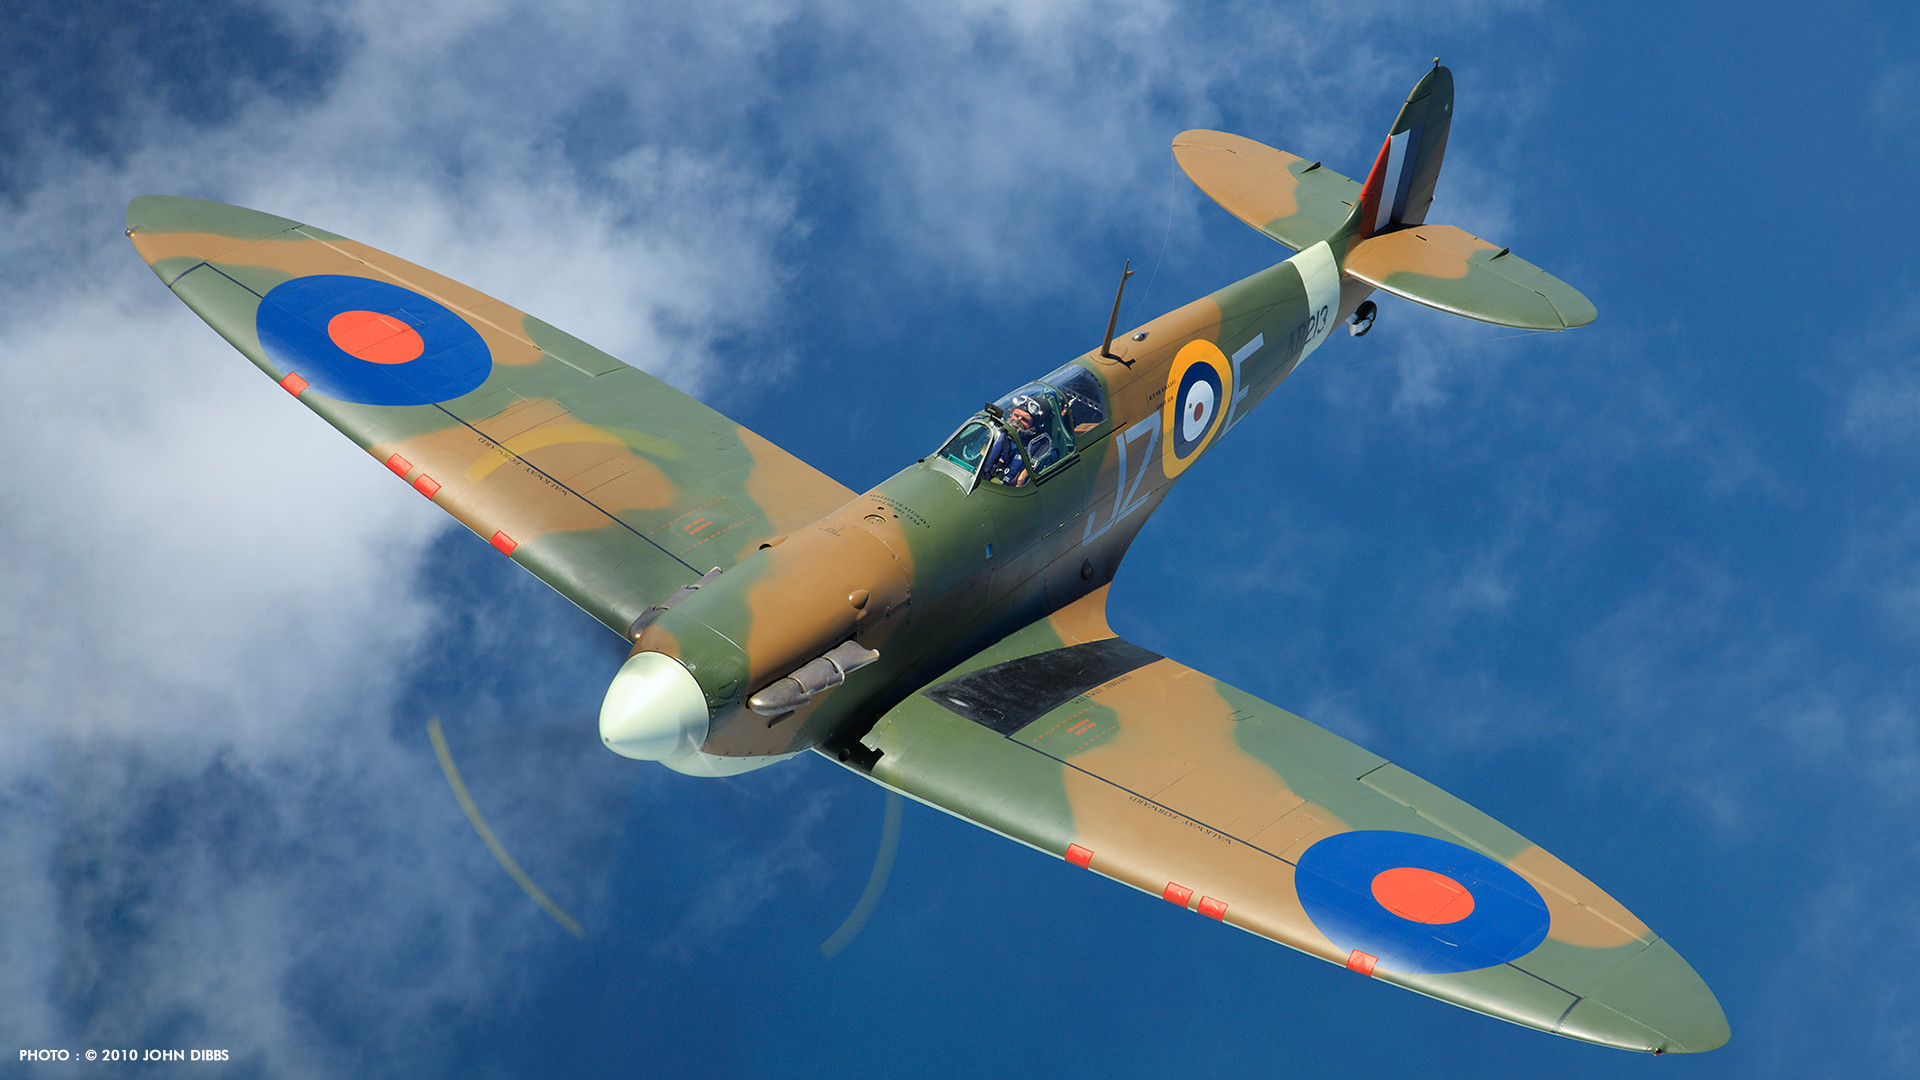 Res: 1920x1080, Hd Wallpapers Spitfire Plane 1680 X 1050 871 Kb Jpeg HD Wallpapers